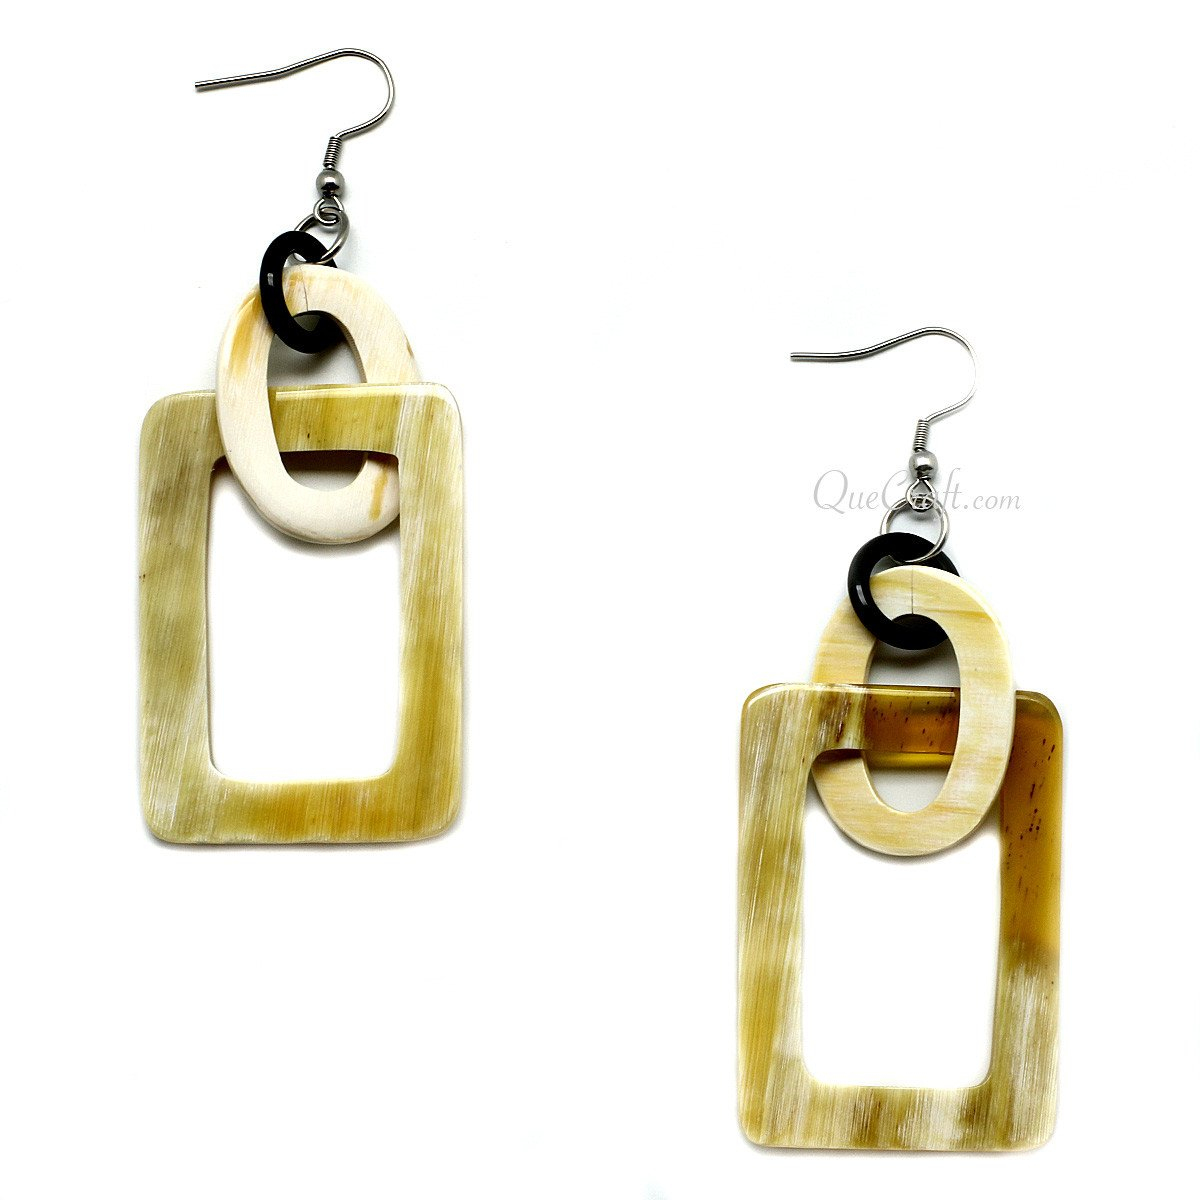 Horn Earrings #9991 - HORN.JEWELRY by QueCraft